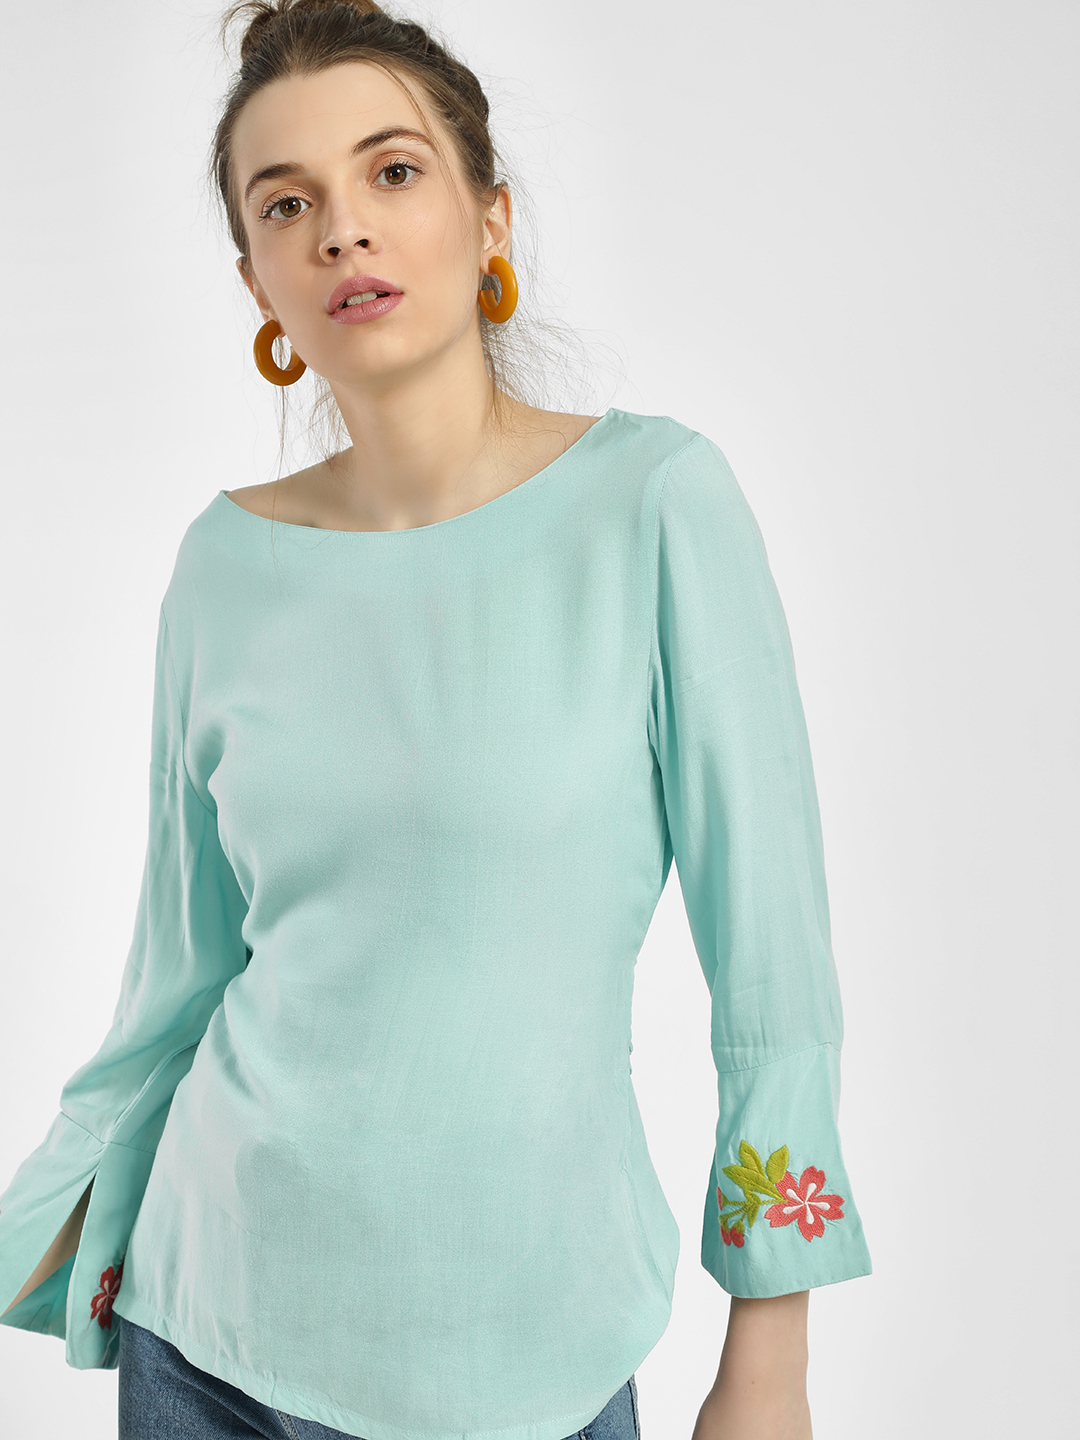 PostFold Blue Floral Embroidered Back Tie-Up Blouse 1